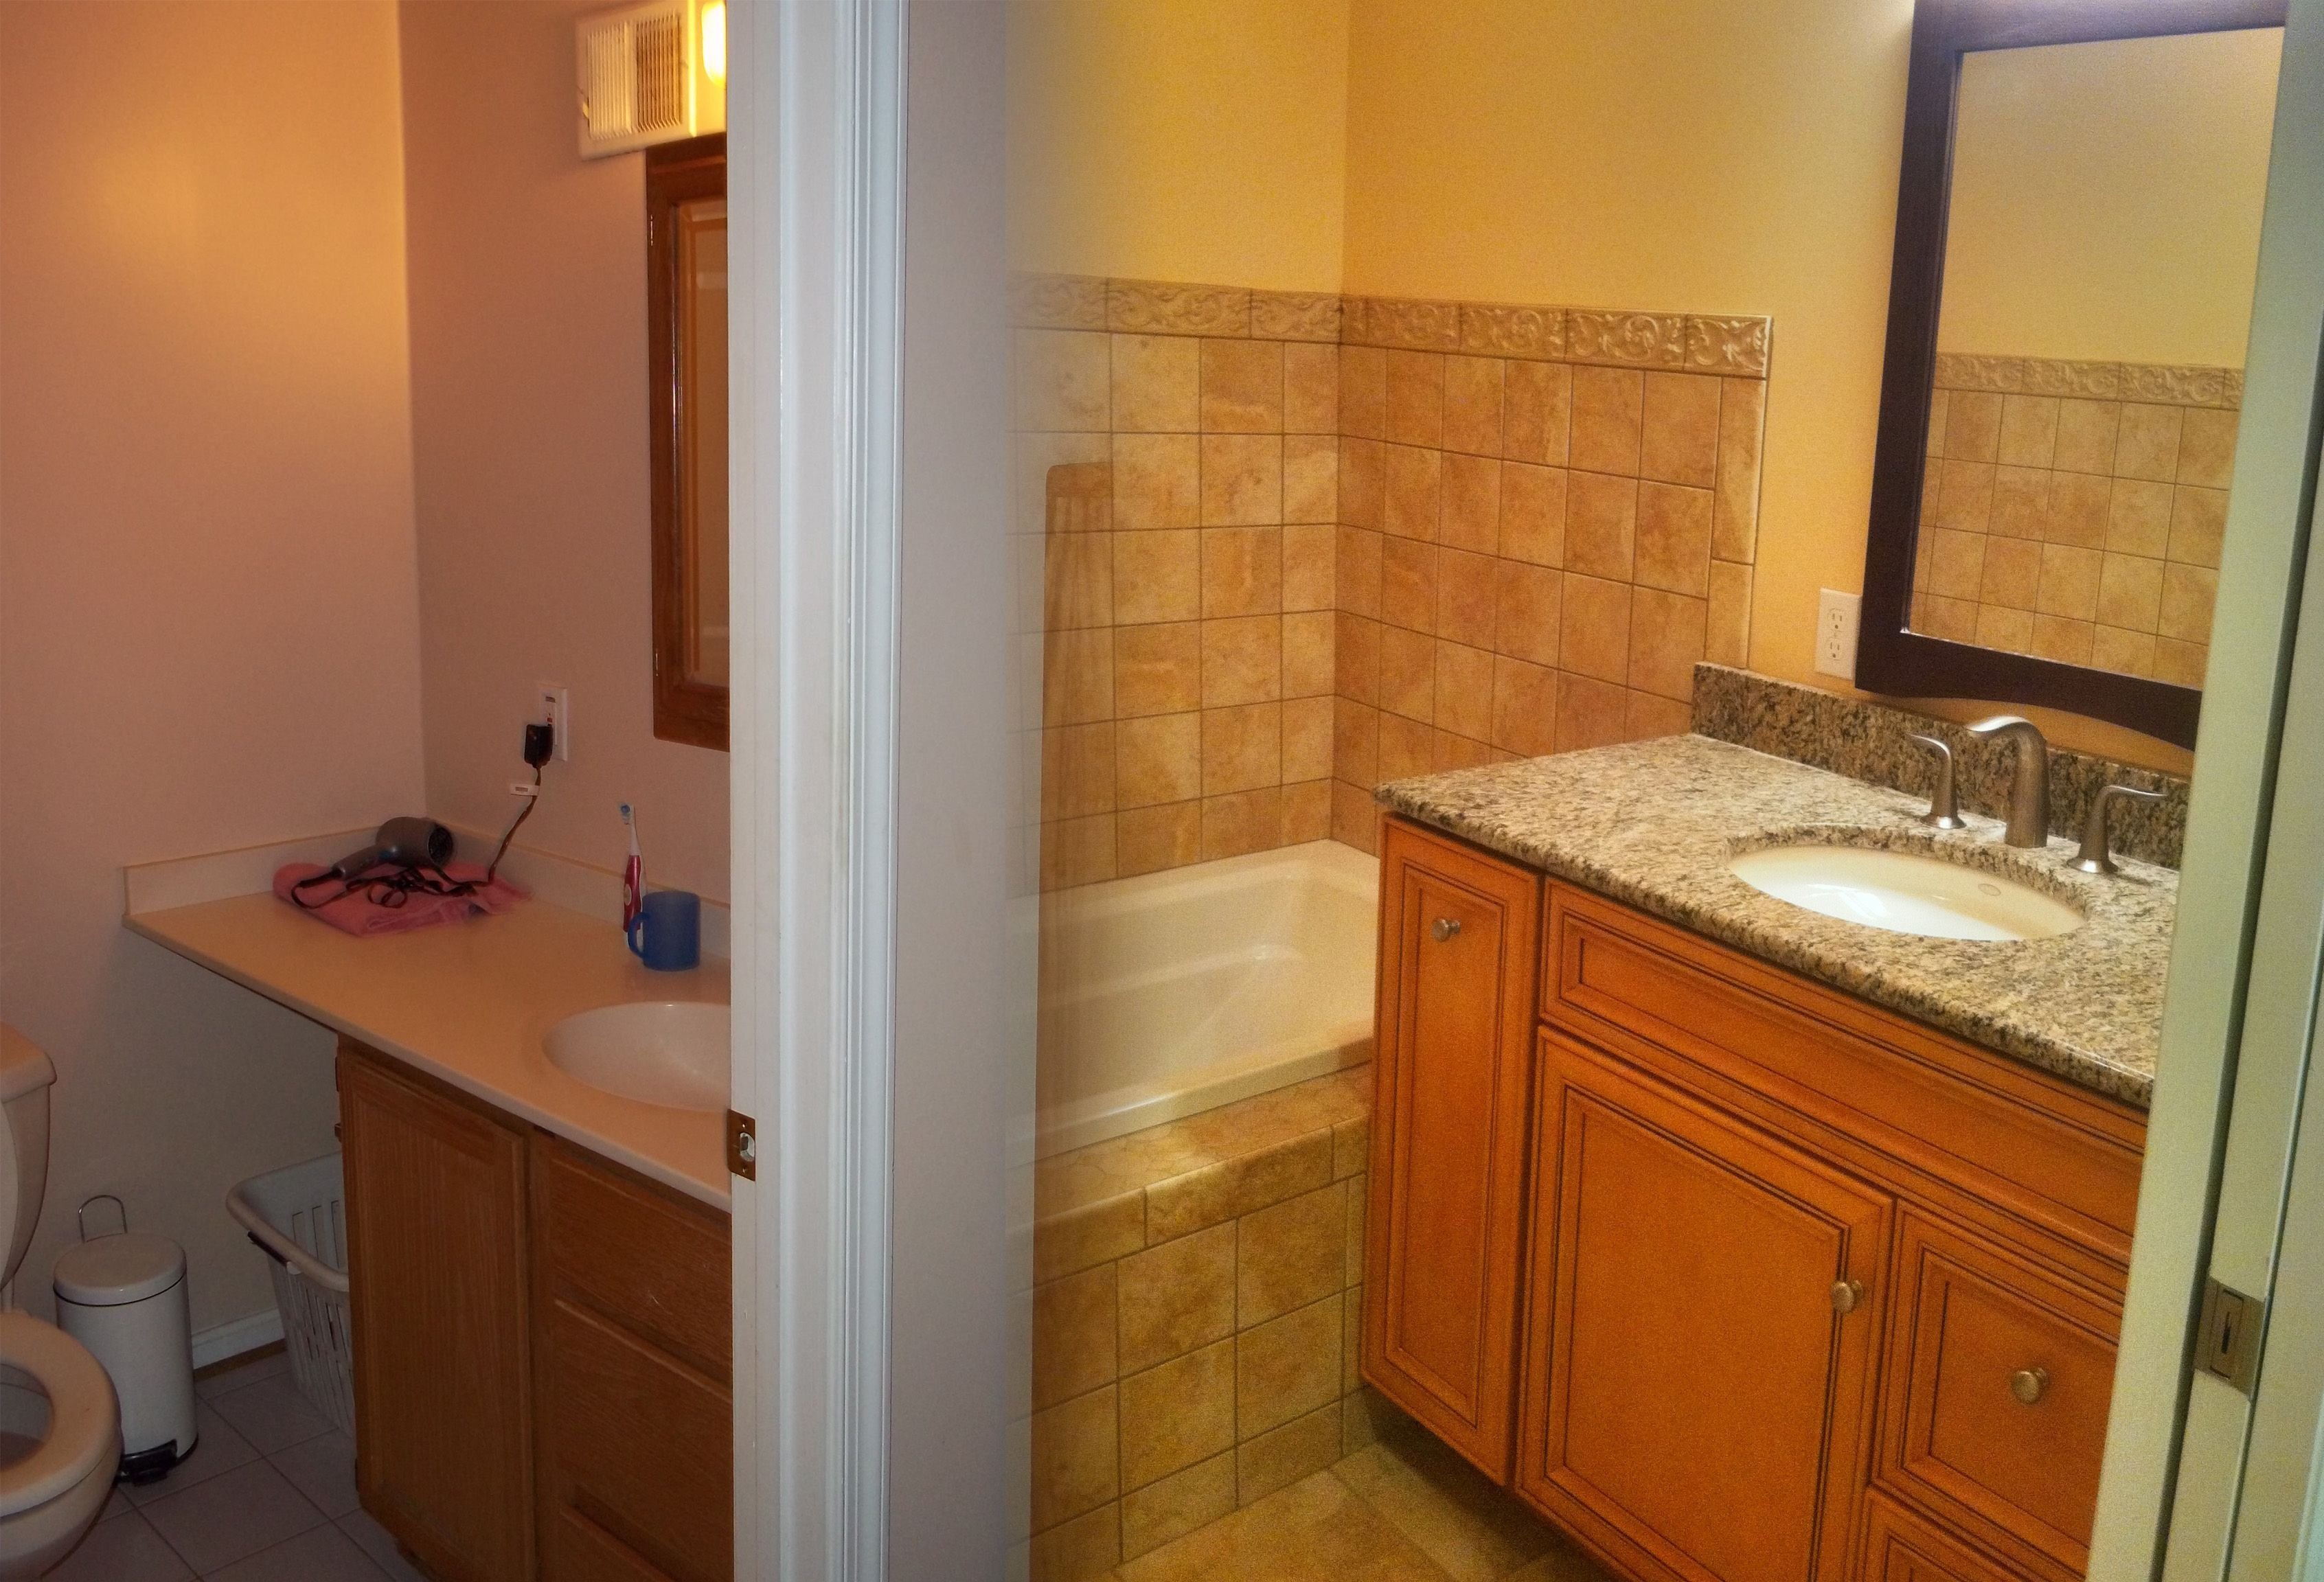 S Bathroom Renovation Before And After   Bathroom - Austin bathroom remodel